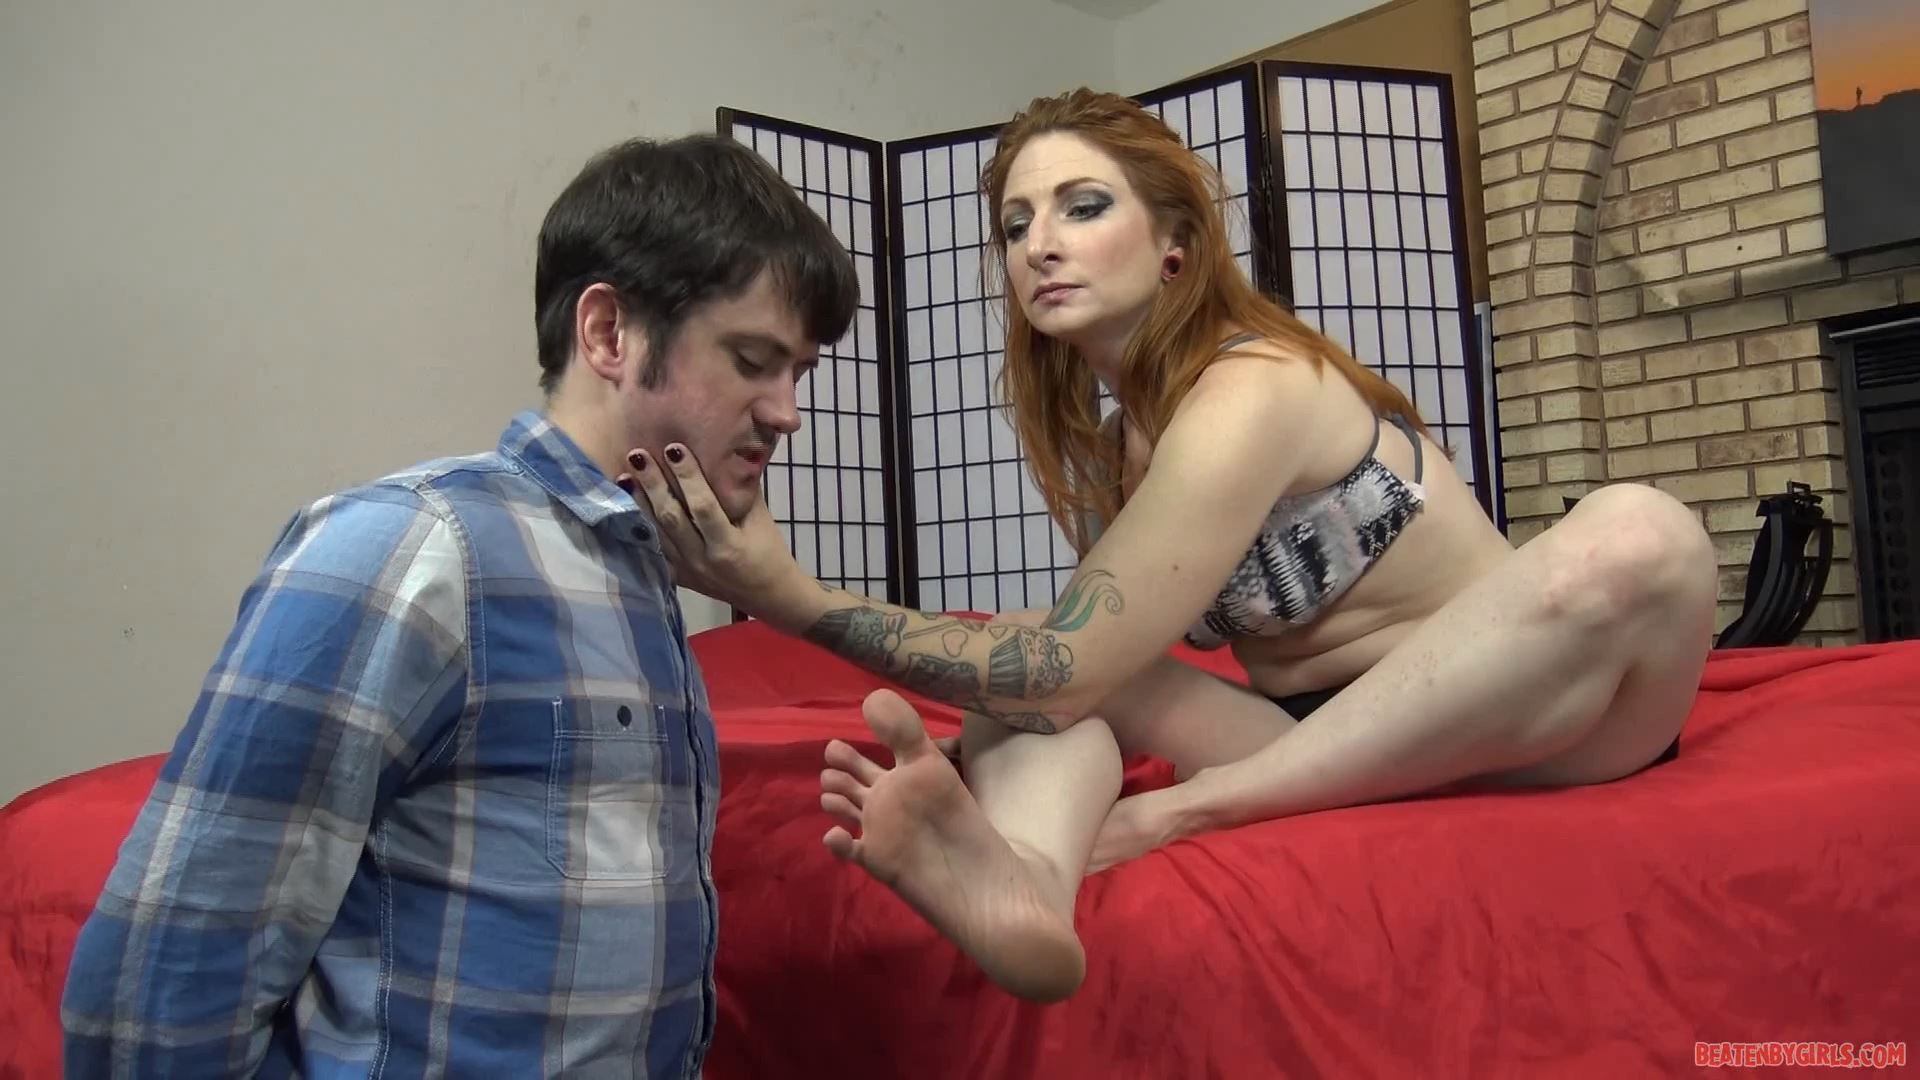 Olivia gives this loser a lesson - BEATENBYGIRLS - FULL HD/1080p/MP4